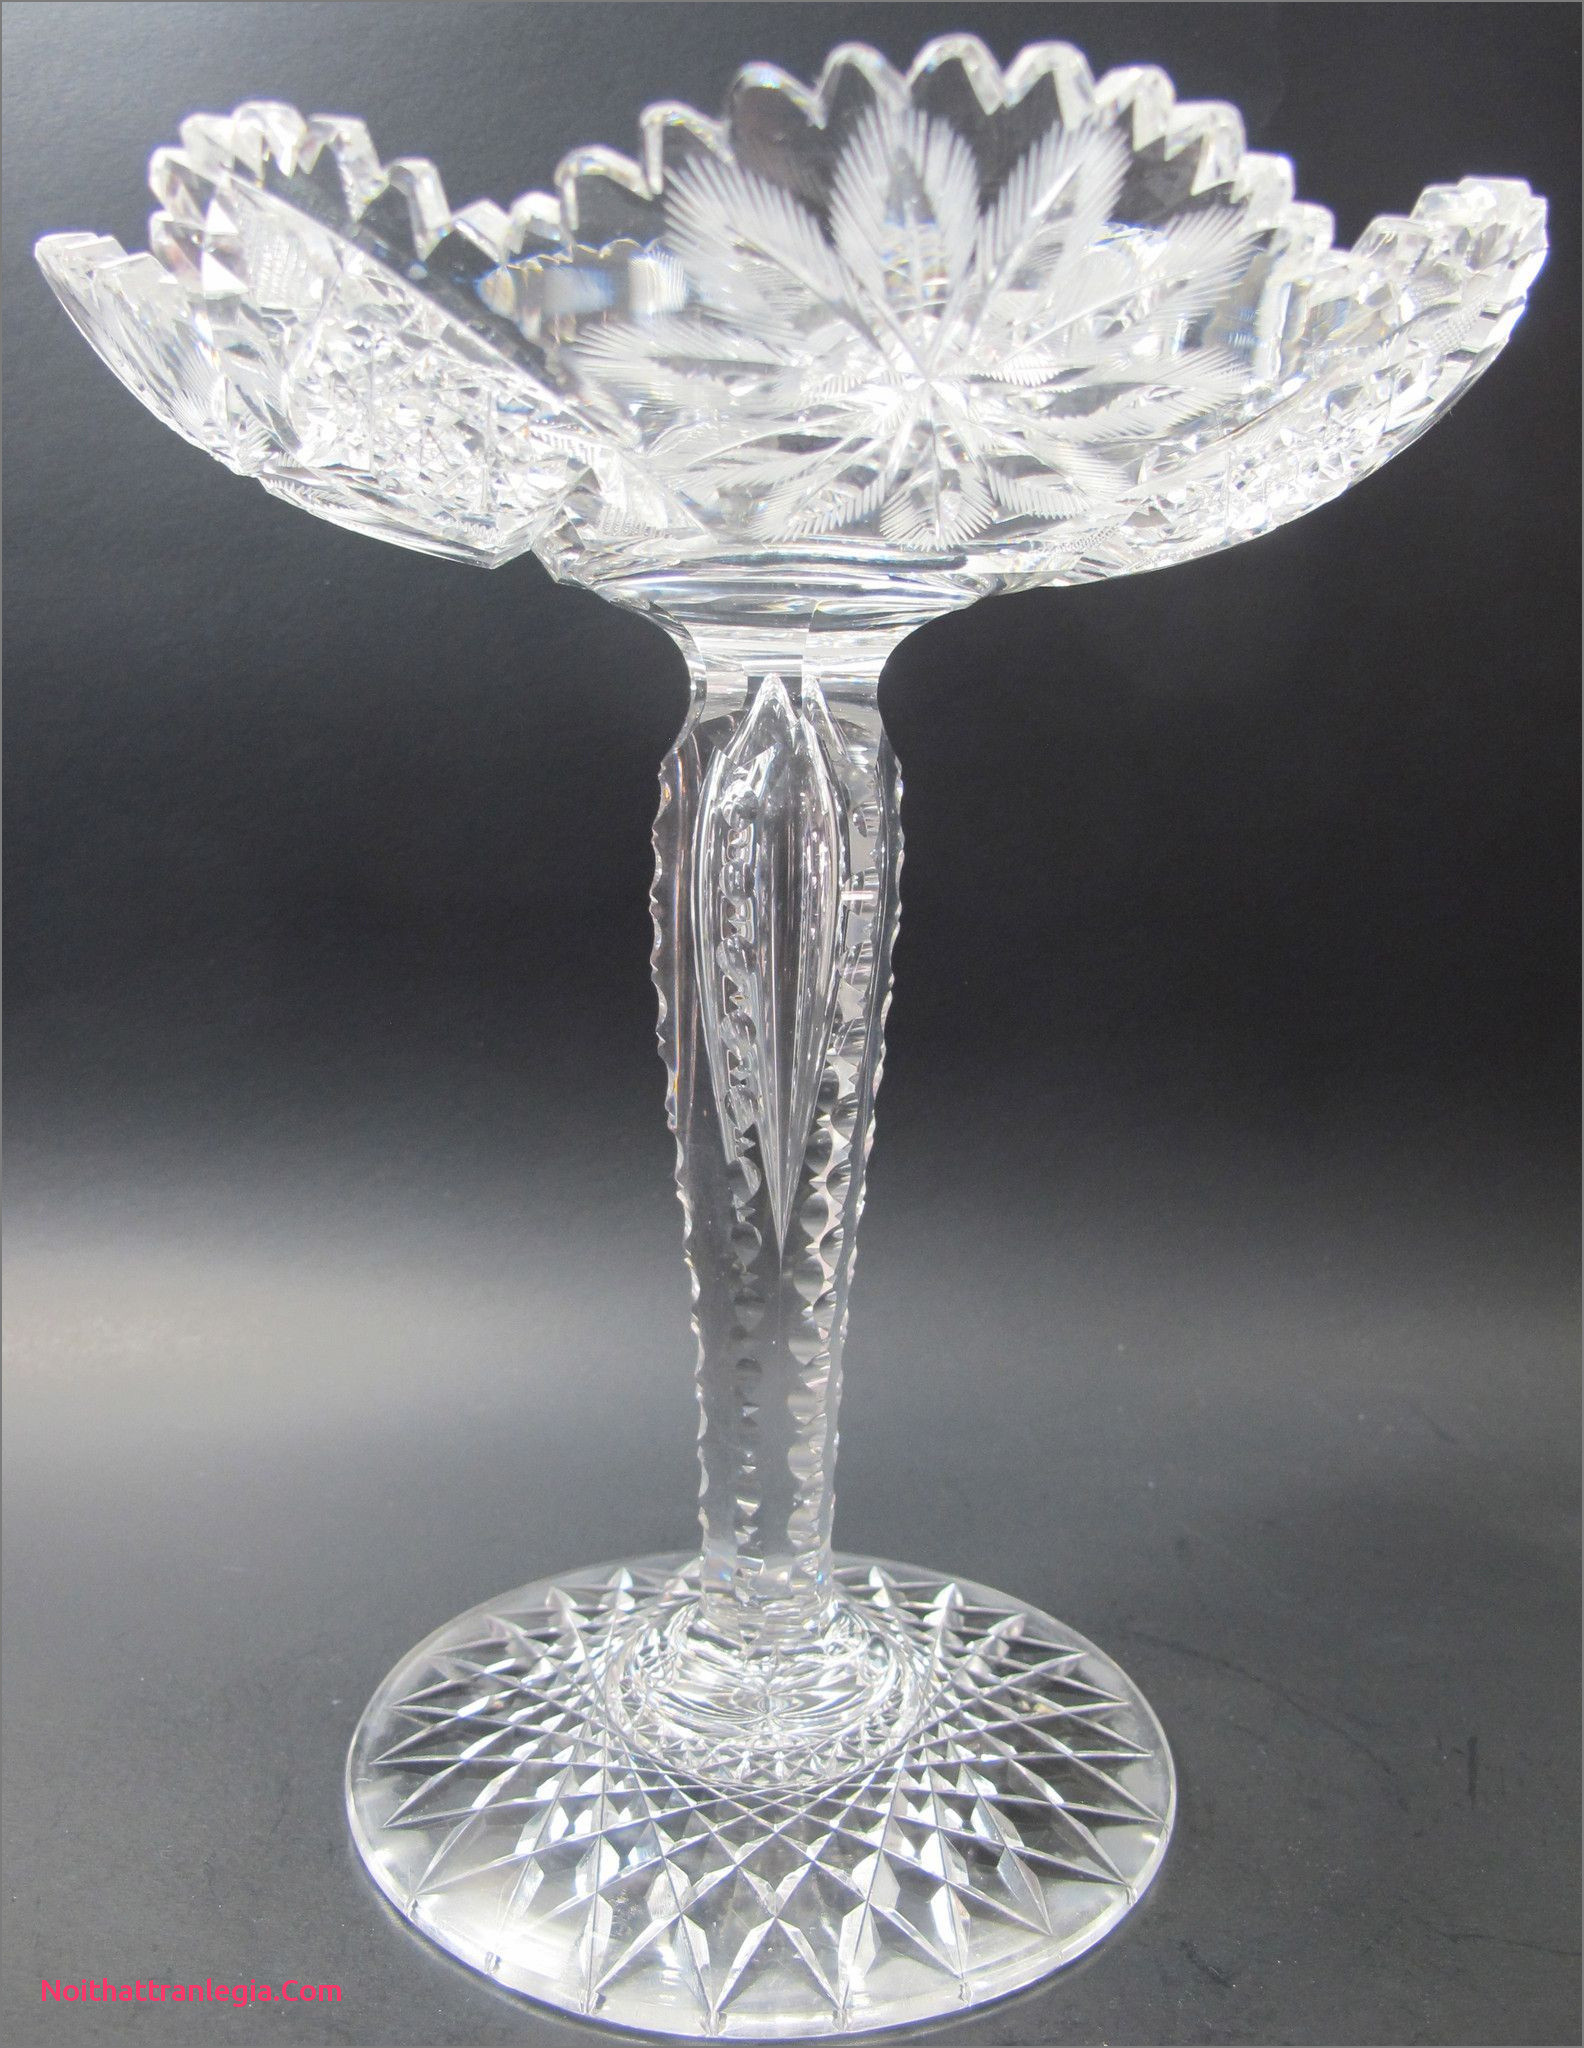 clear glass teardrop vase of 20 cut glass antique vase noithattranlegia vases design within fering this abp antique cut glass pote from the american brilliant period 1886 1916 9 5